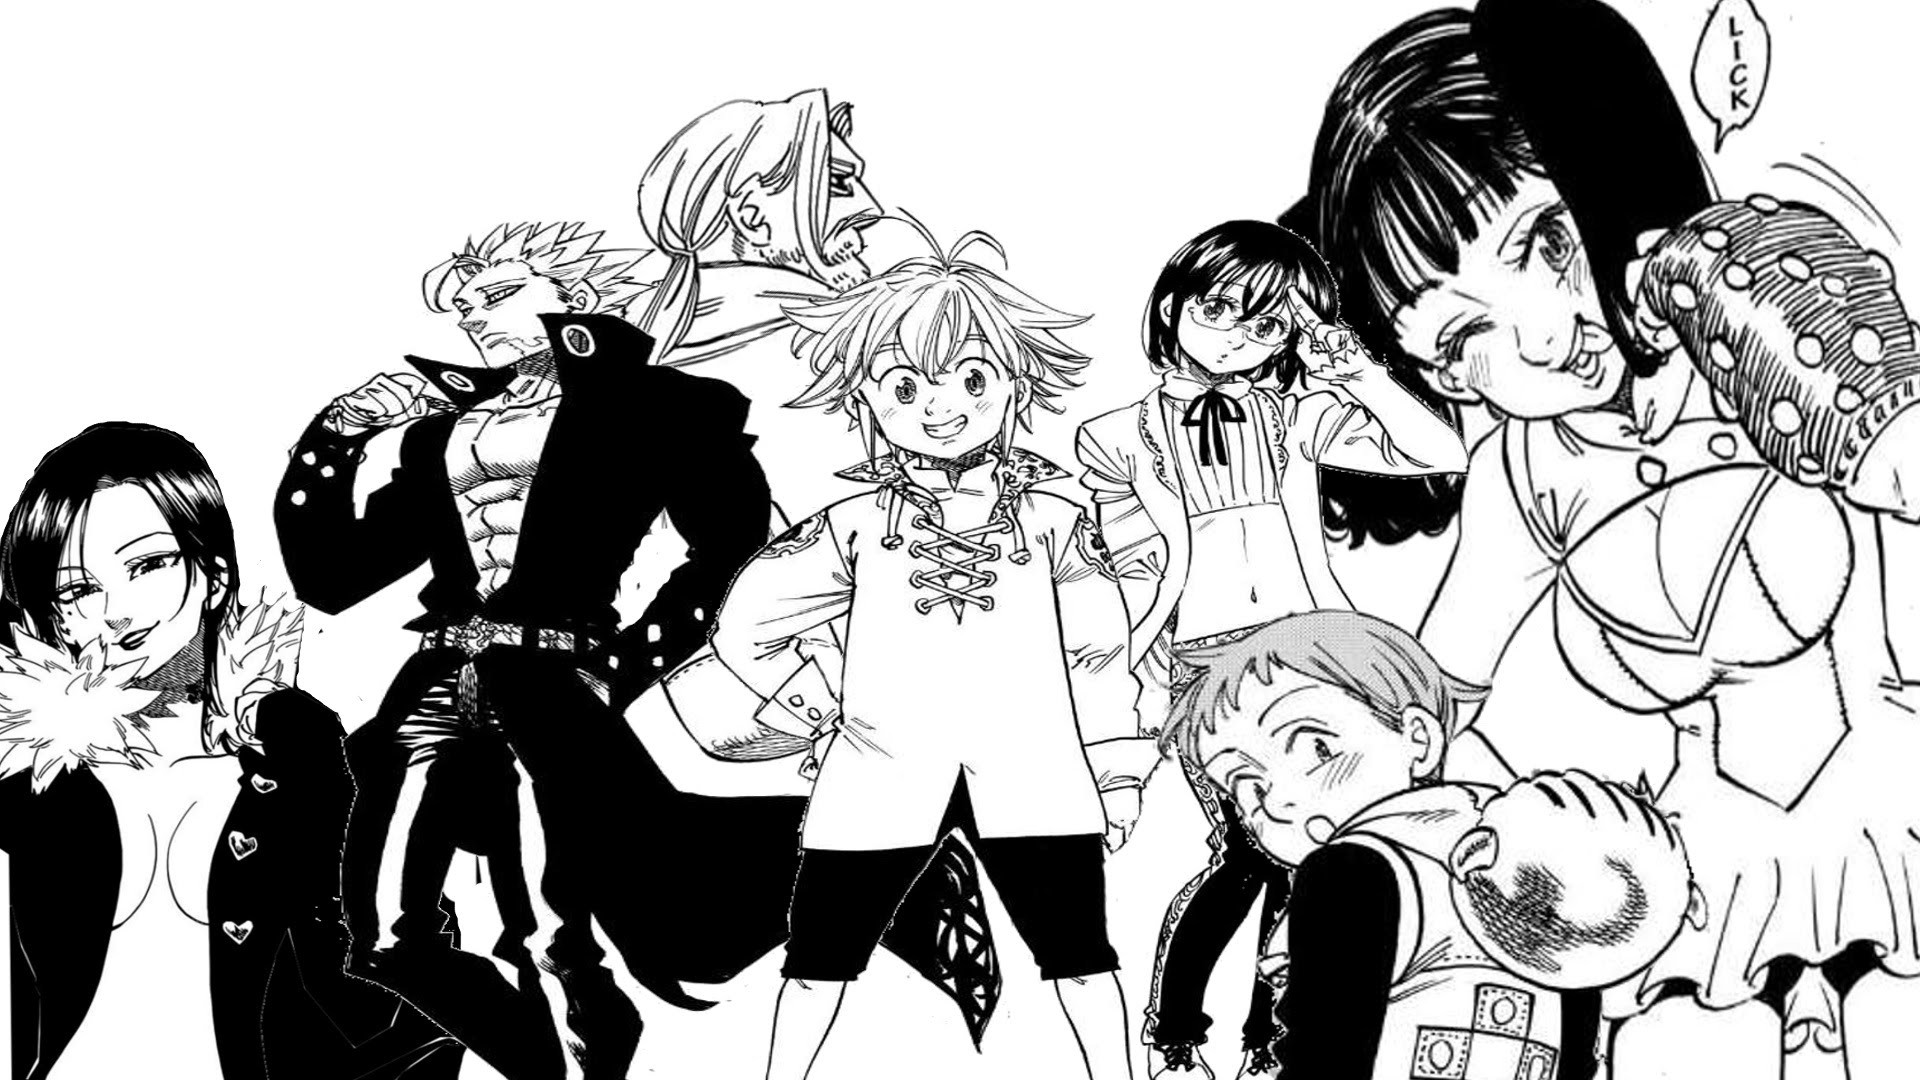 From left to right: Merlin, Ban, Escanor, Meliodas, Gowther, King